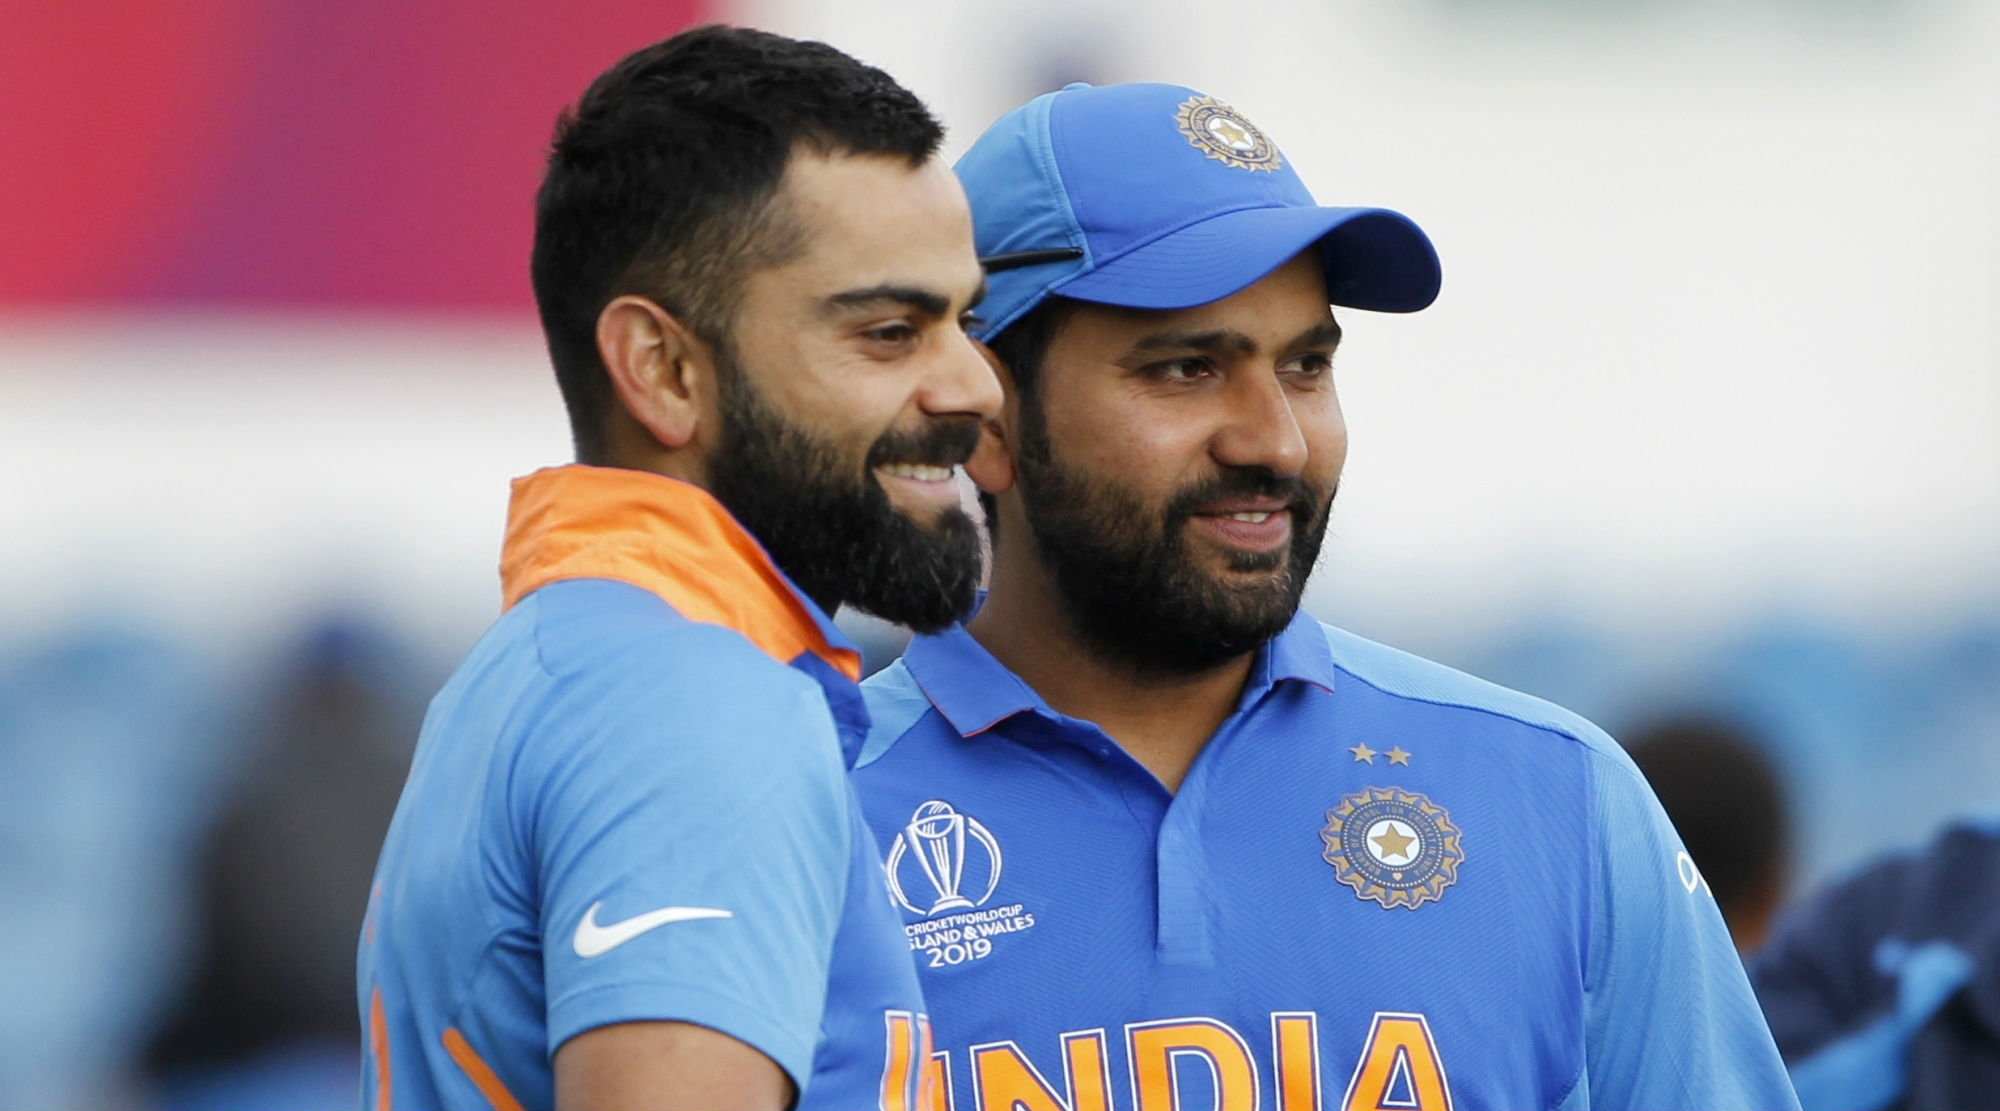 Rohit Sharma Matches Virat Kohli's Tally of Centuries Against Australia During IND vs AUS 3rd ODI 2020